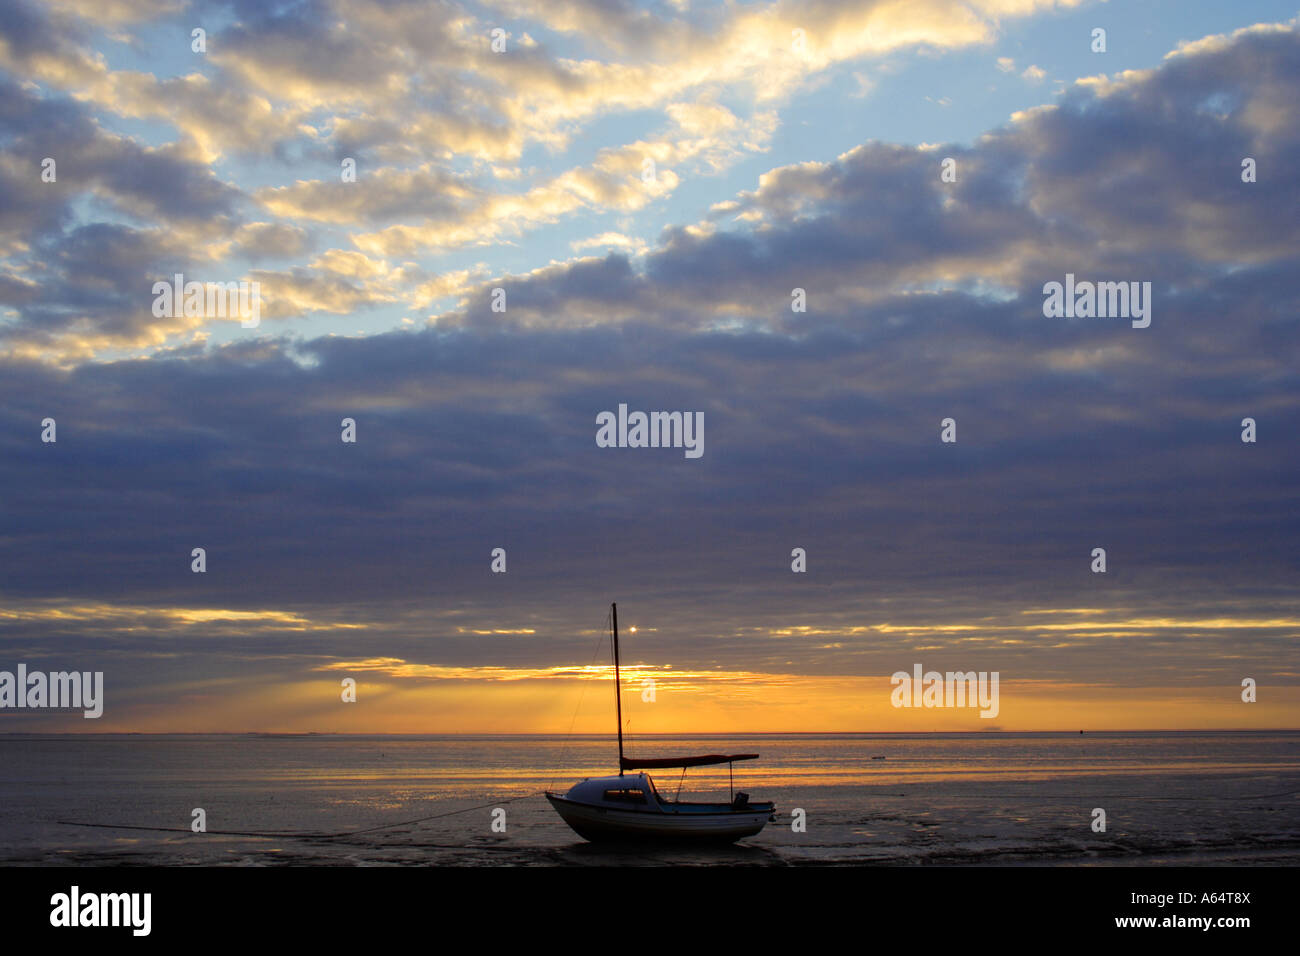 Solitary boat in the sea at Snettisham beach, West Norfolk coast with glorious sunset behind - Stock Image